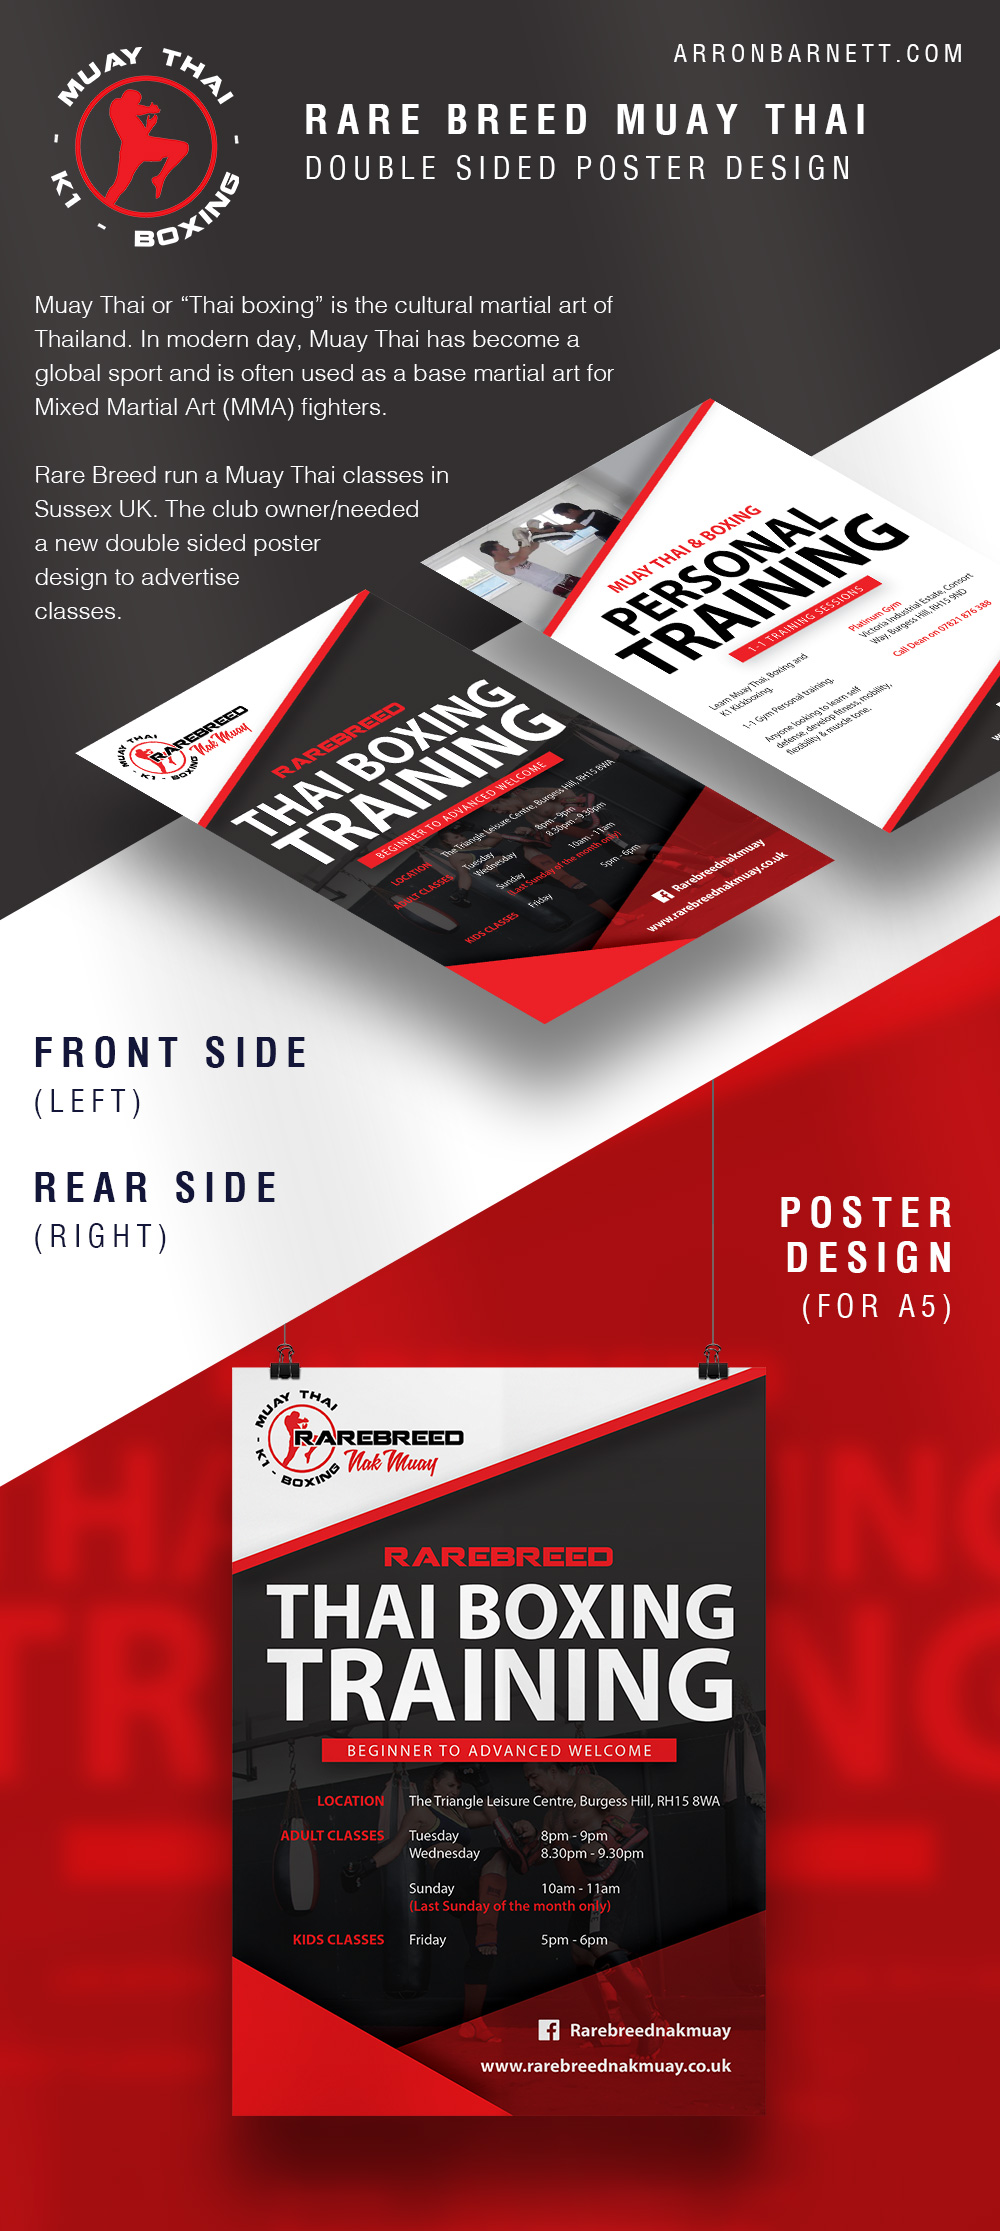 Rare Breed Thai Boxing Personal Training Poster